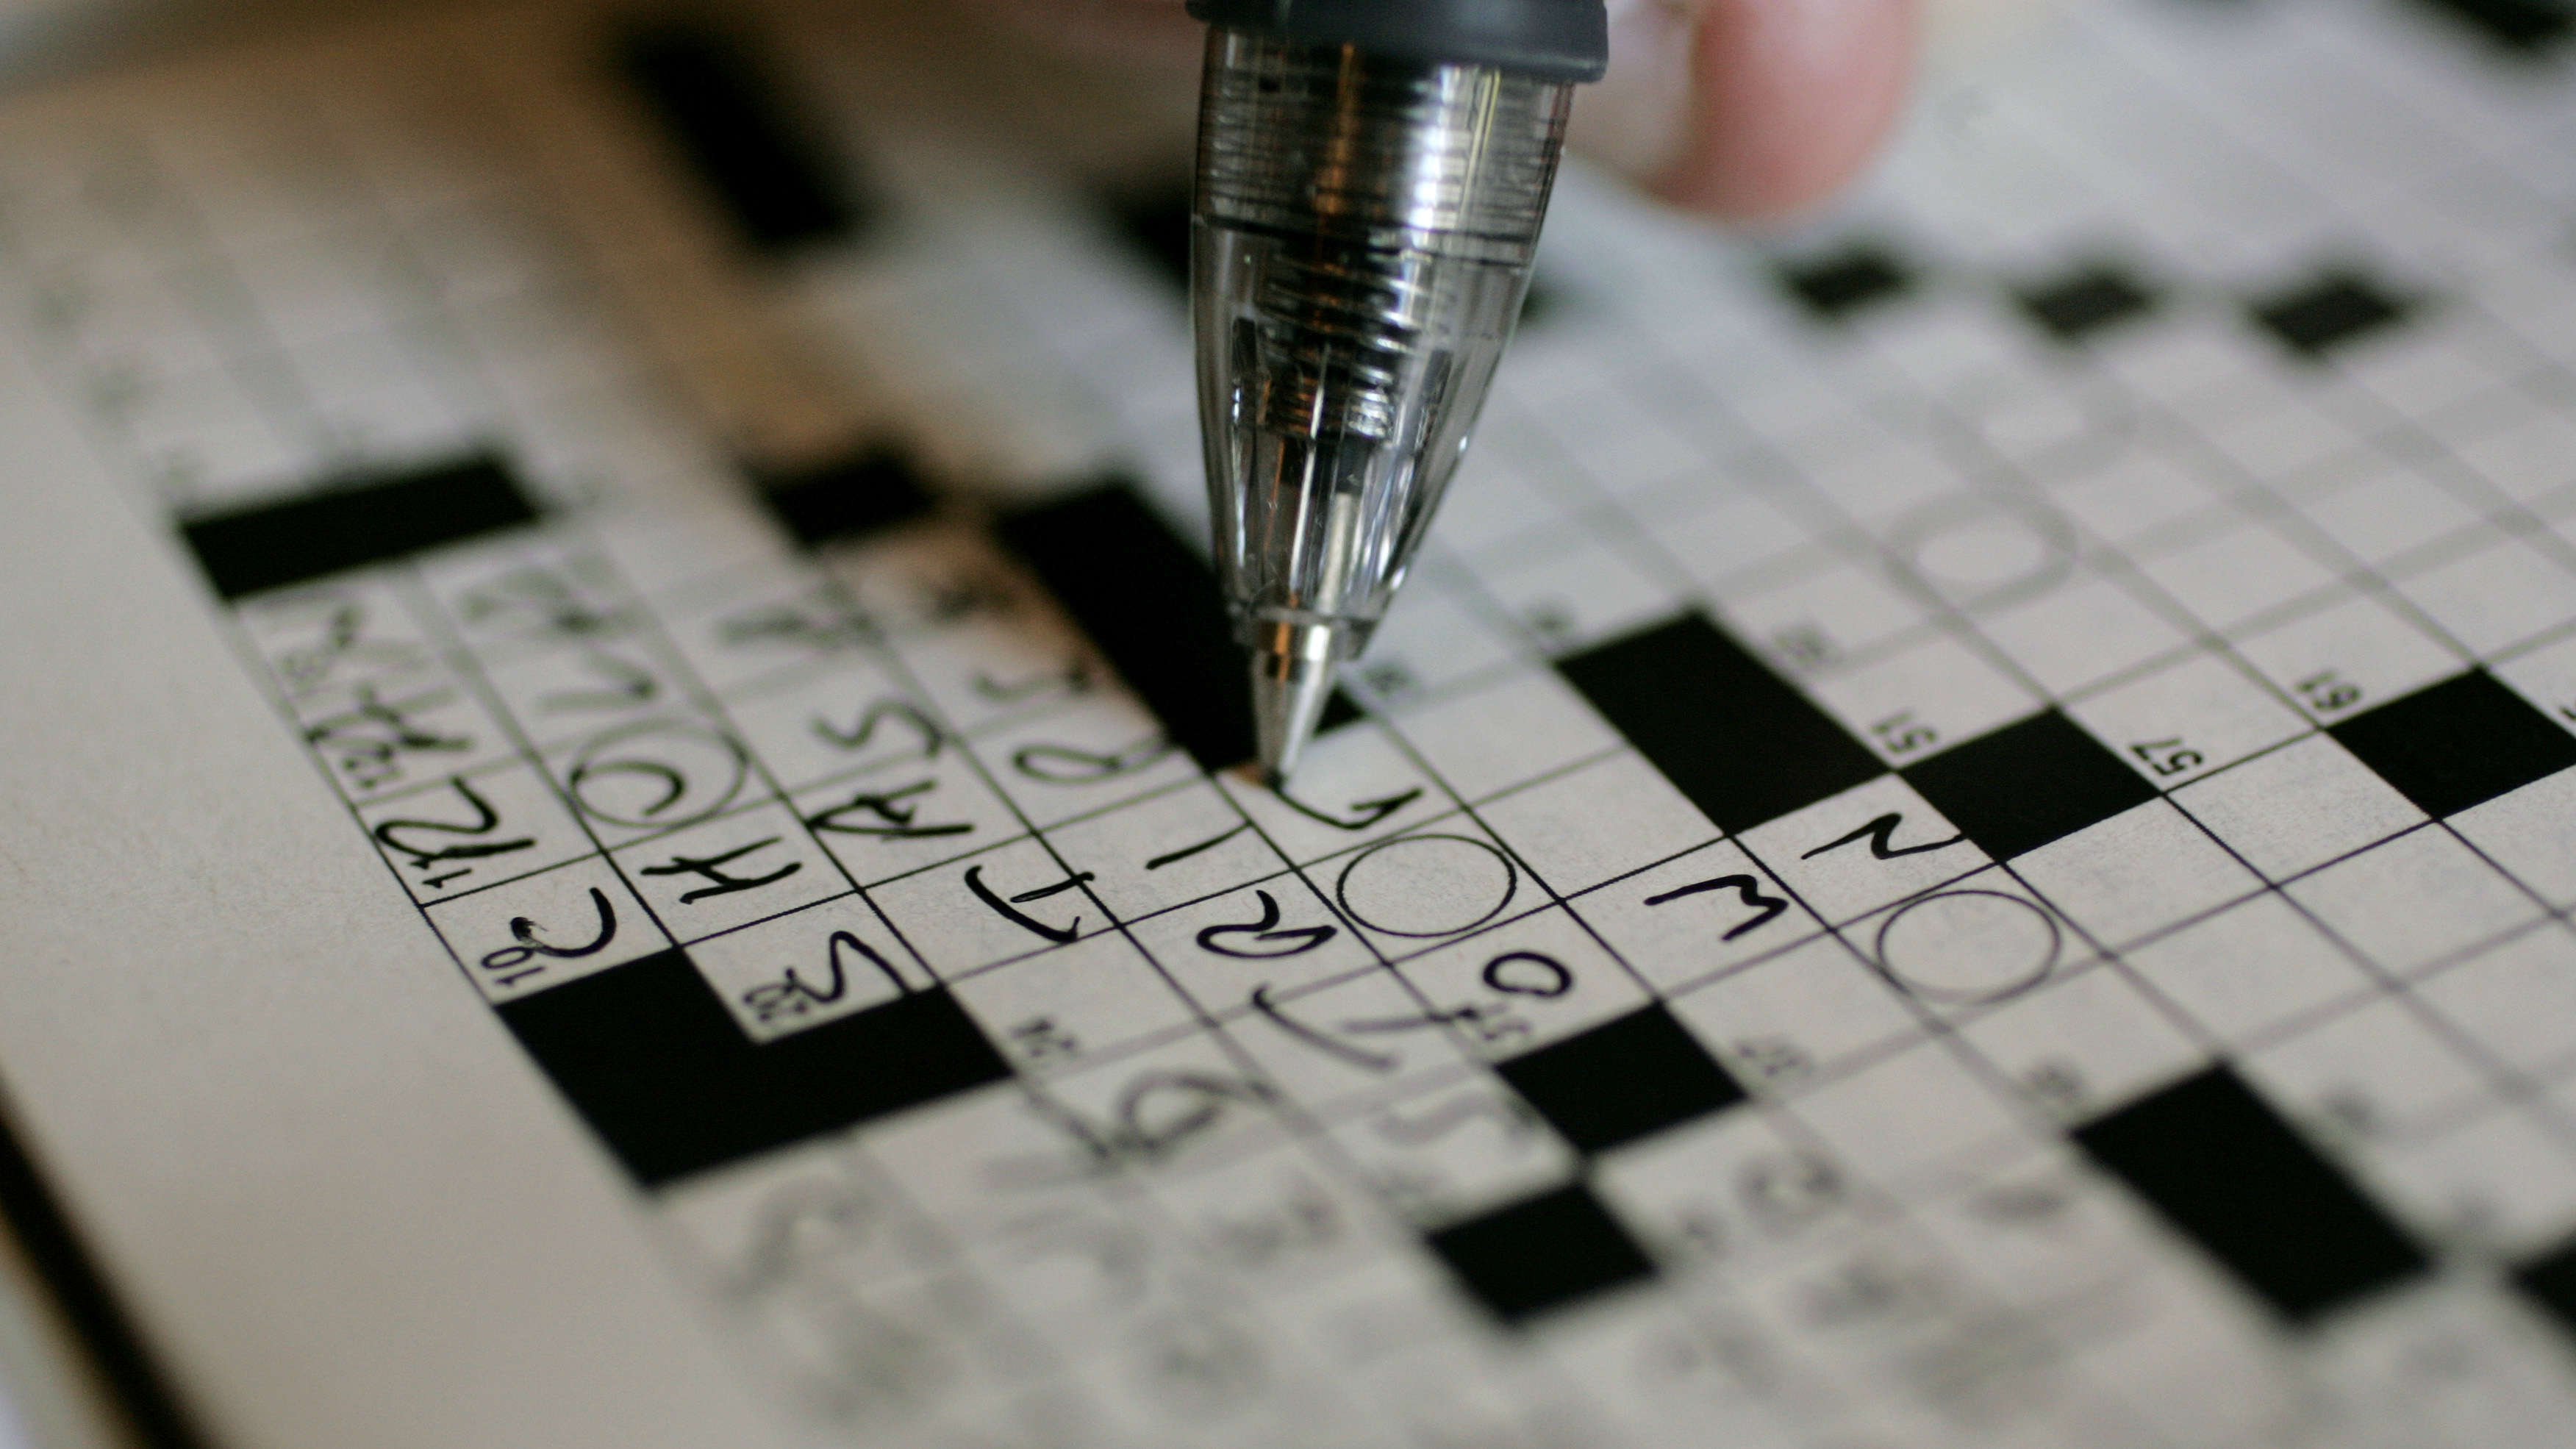 A pen touching a crossword puzzle